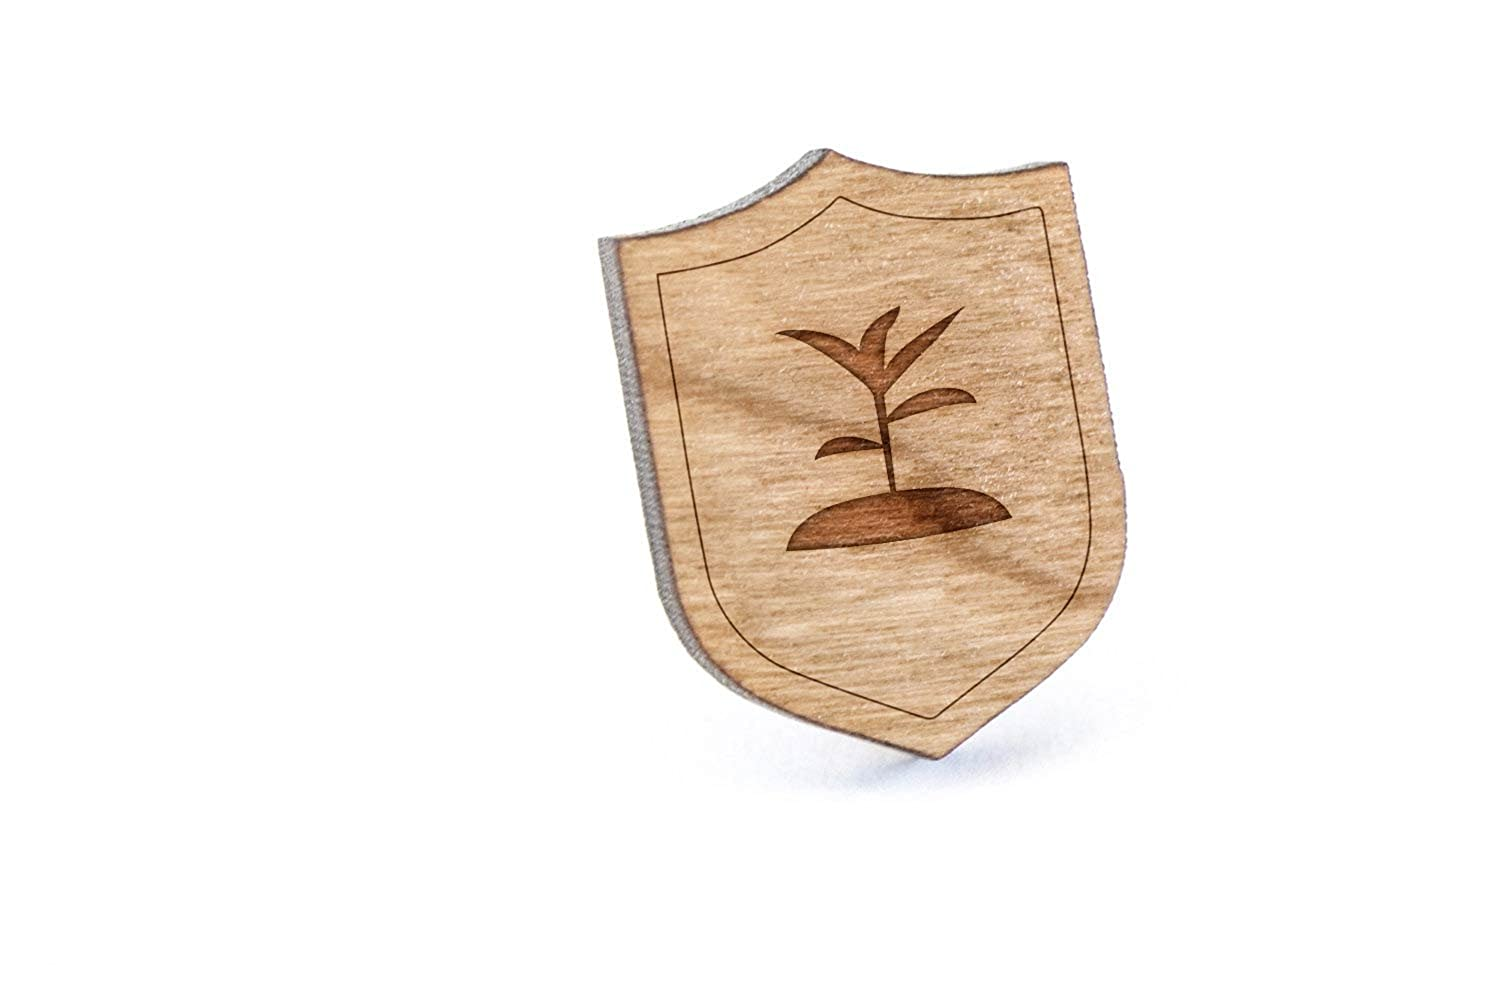 Seedling Lapel Pin, Wooden Pin And Tie Tack | Rustic And Minimalistic Groomsmen Gifts And Wedding Accessories